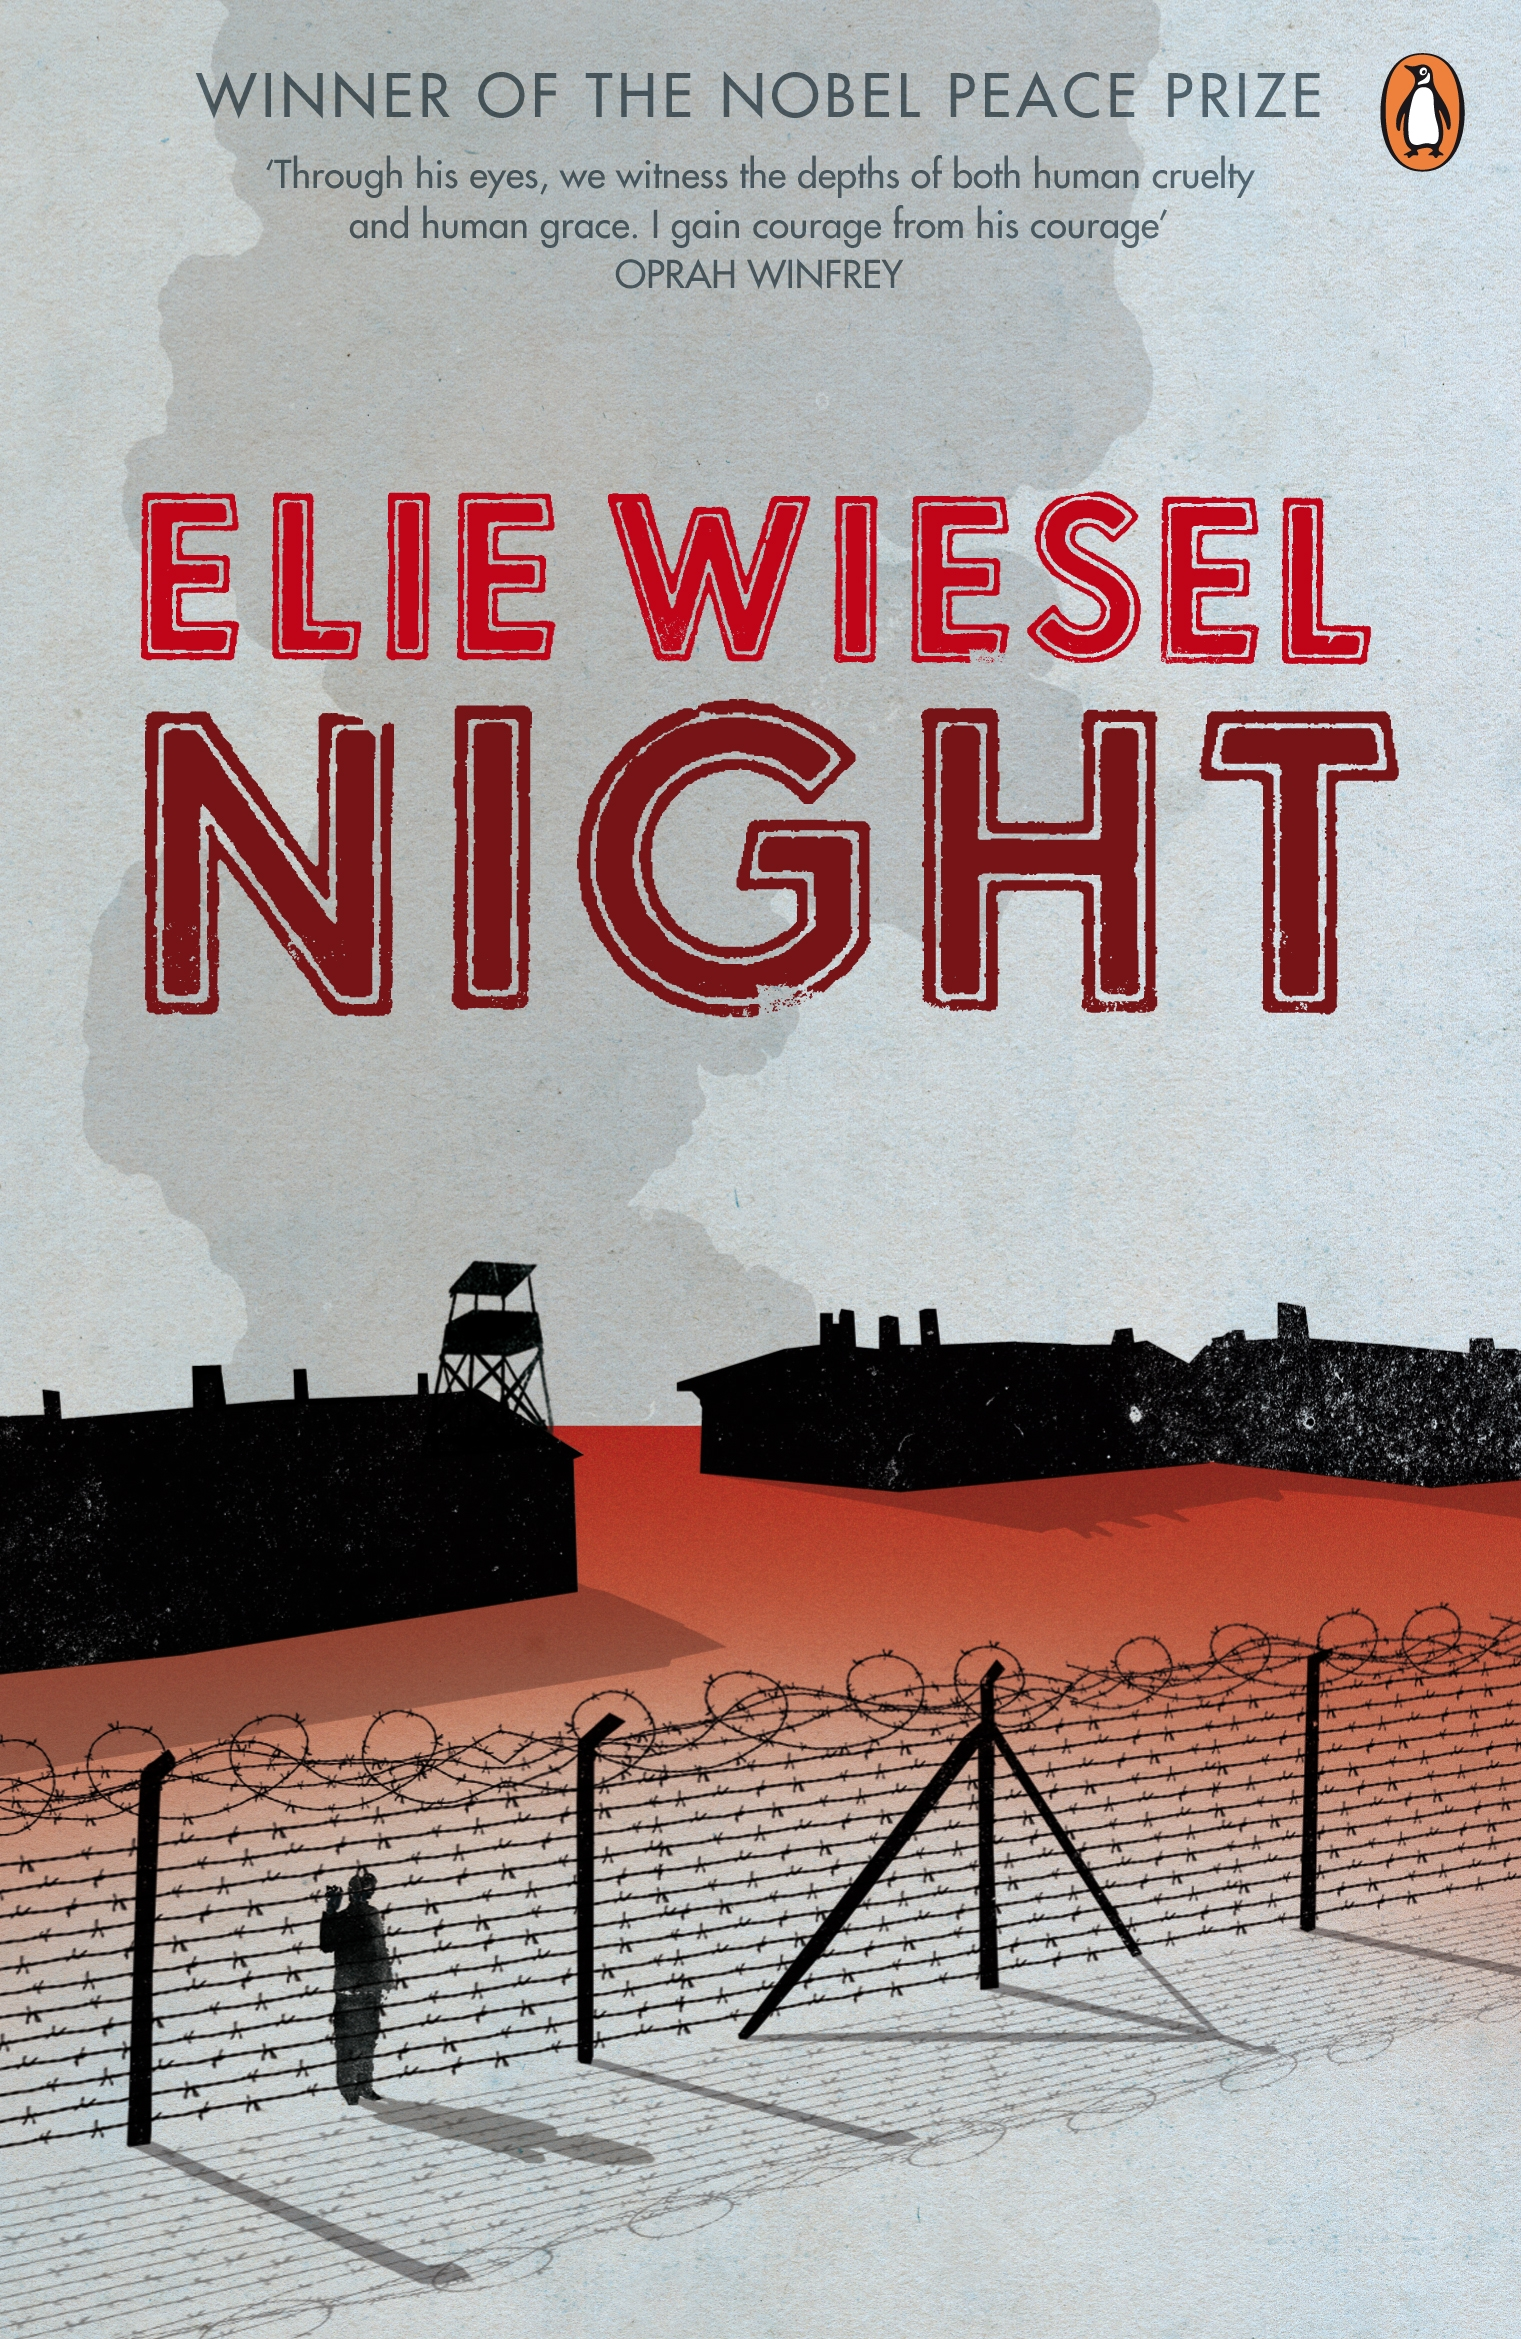 elie wiesel night essay night by elie wiesel book review essay buy  night by elie wiesel theme essay night by elie wiesel theme essay